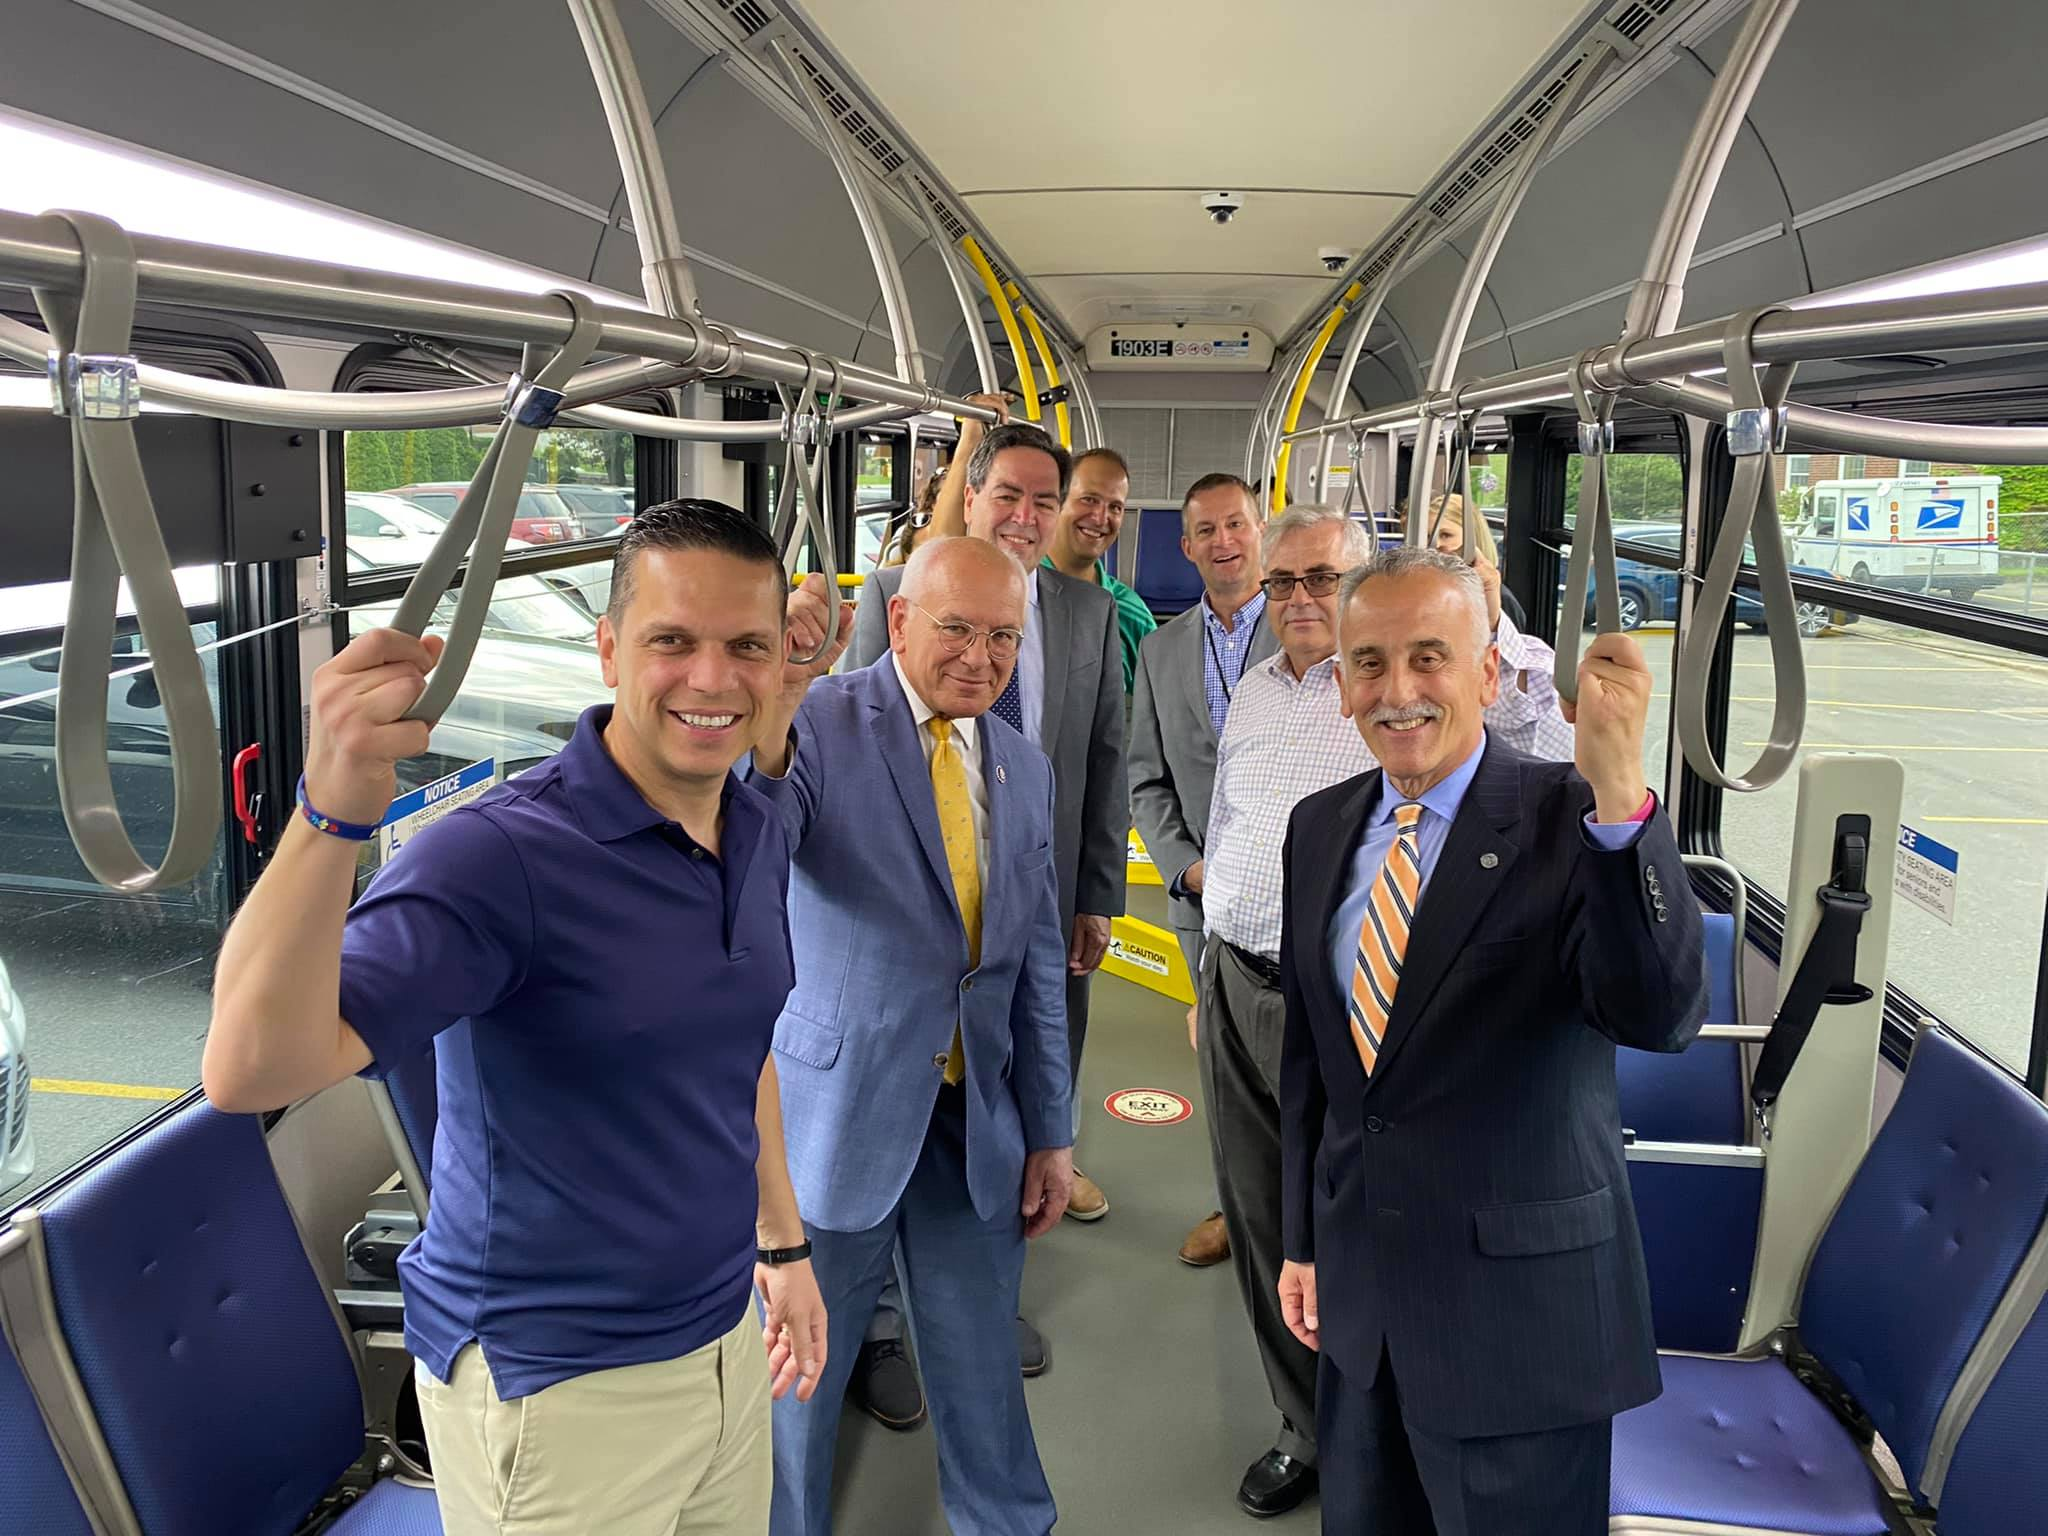 officials ride a city bus together